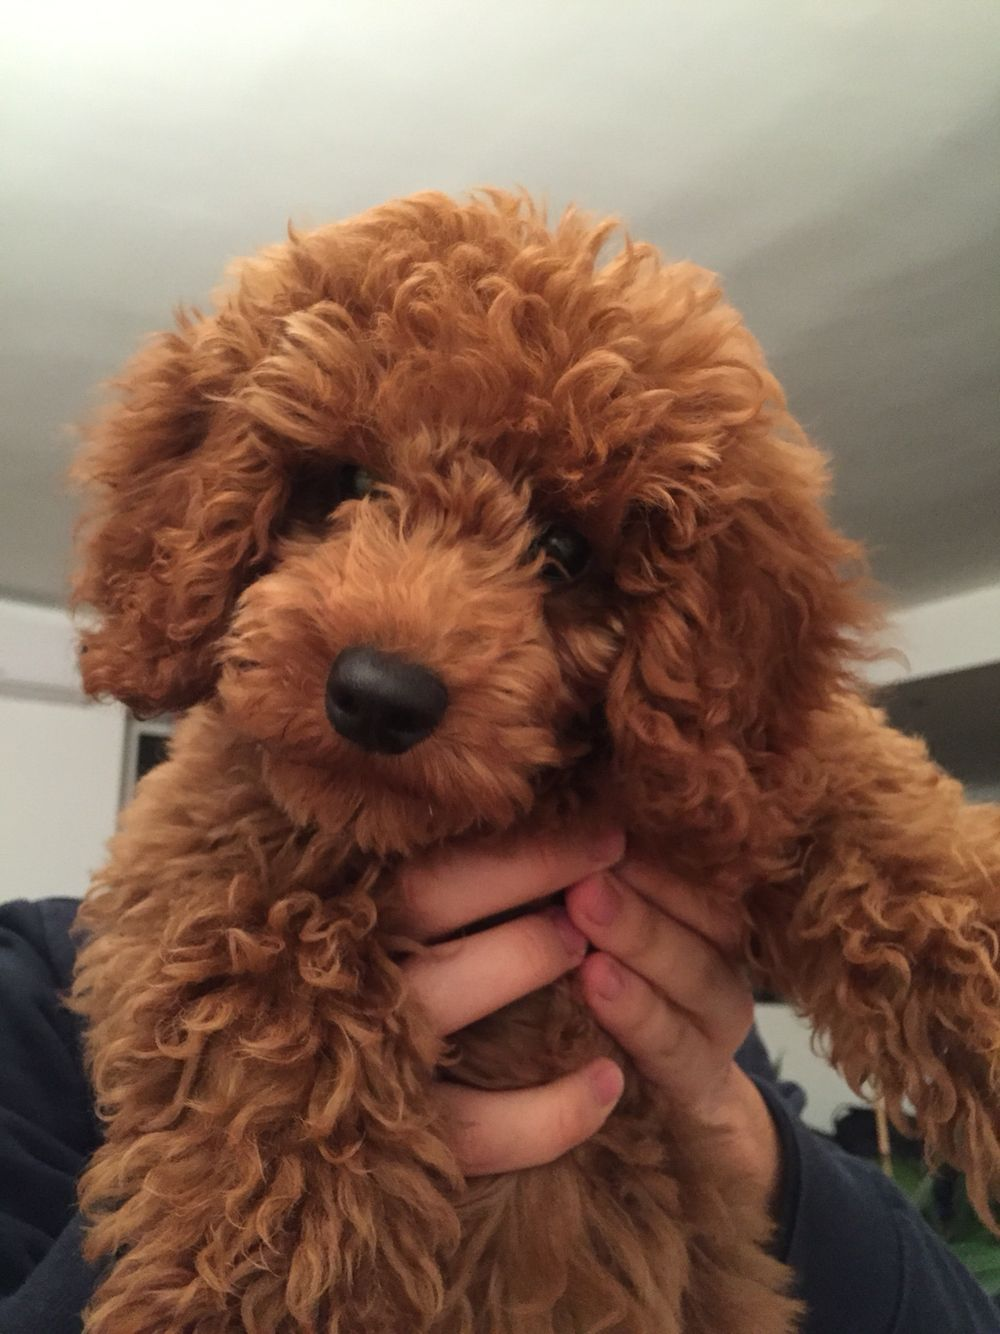 Eris Red Poodle Cute Puppy Breeds Red Poodles Toy Poodle